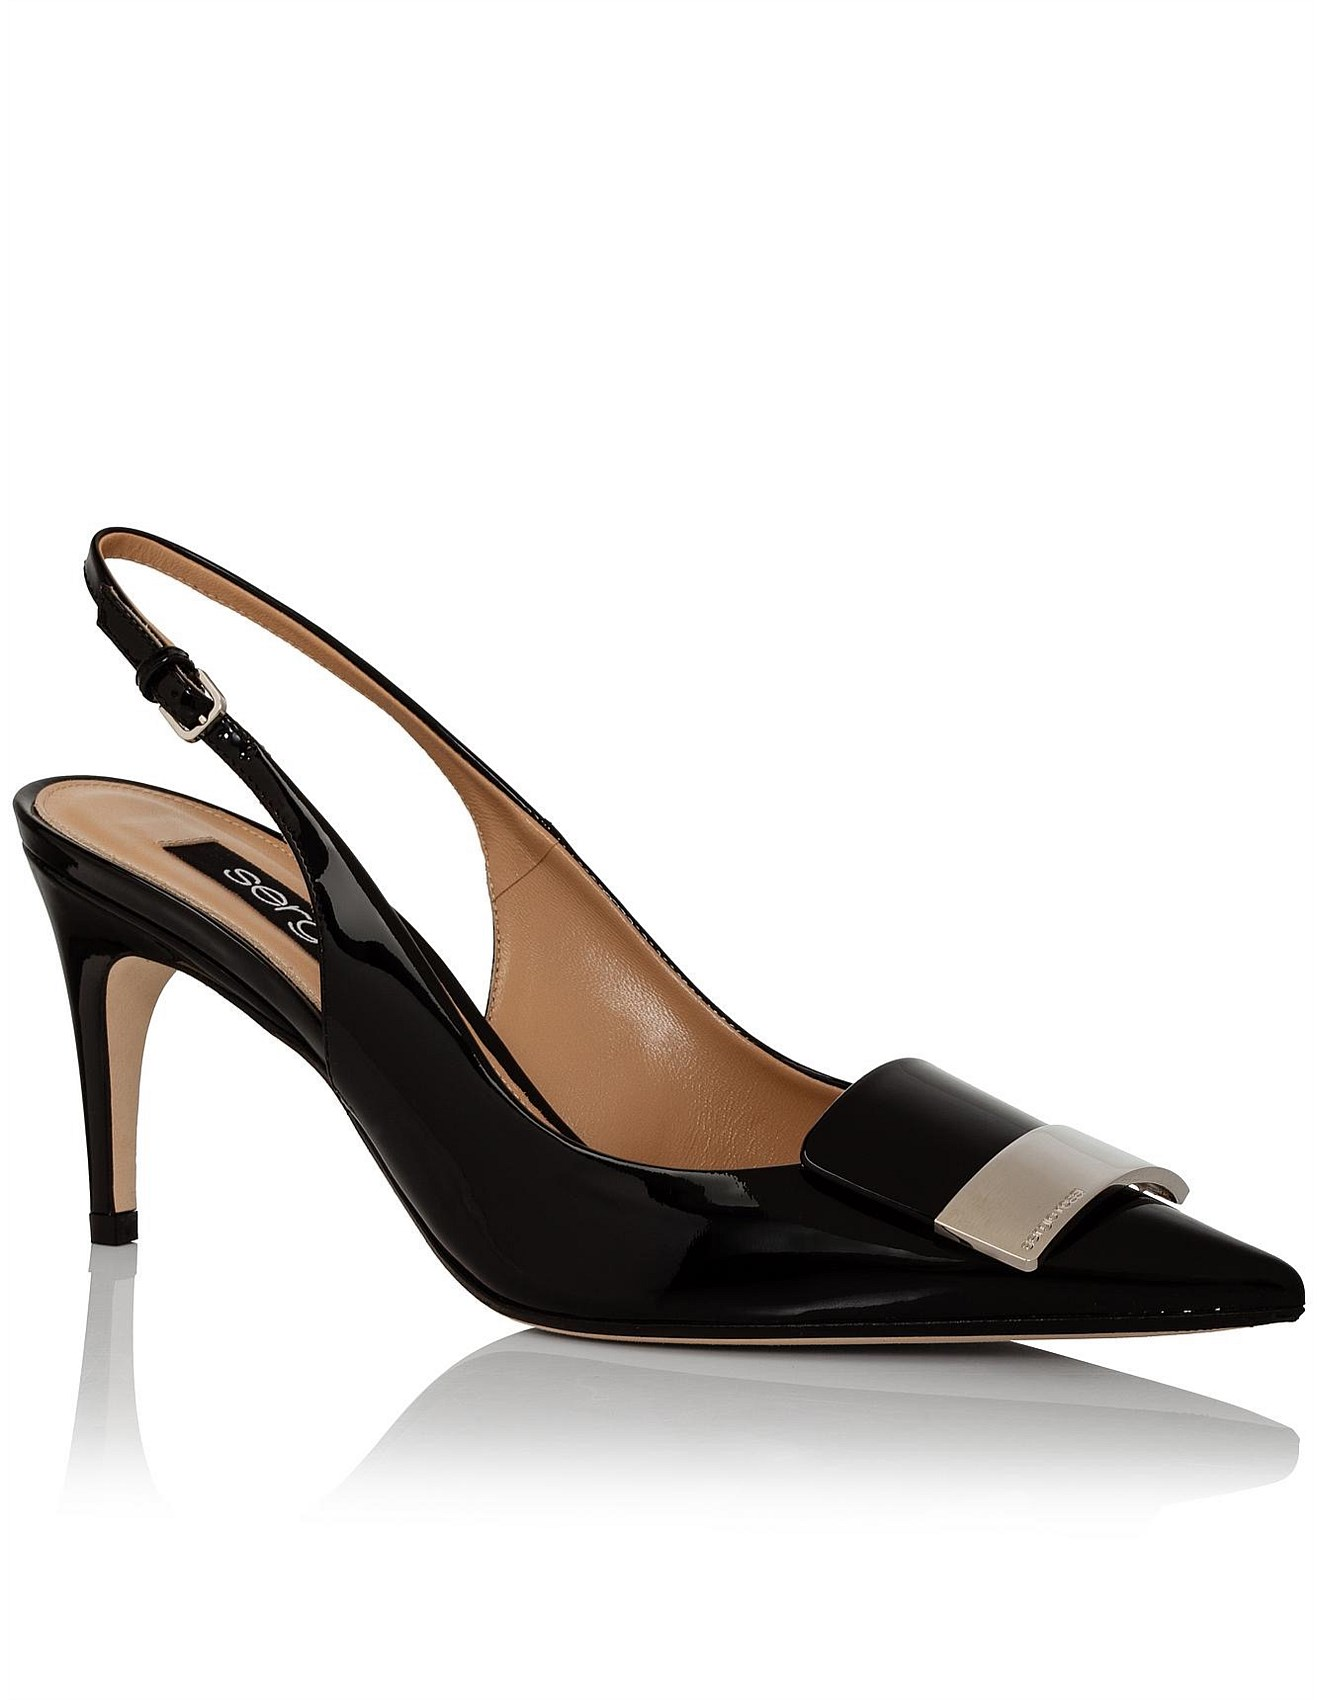 New In Shoes | Latest Shoes | Shoes Online | David Jones